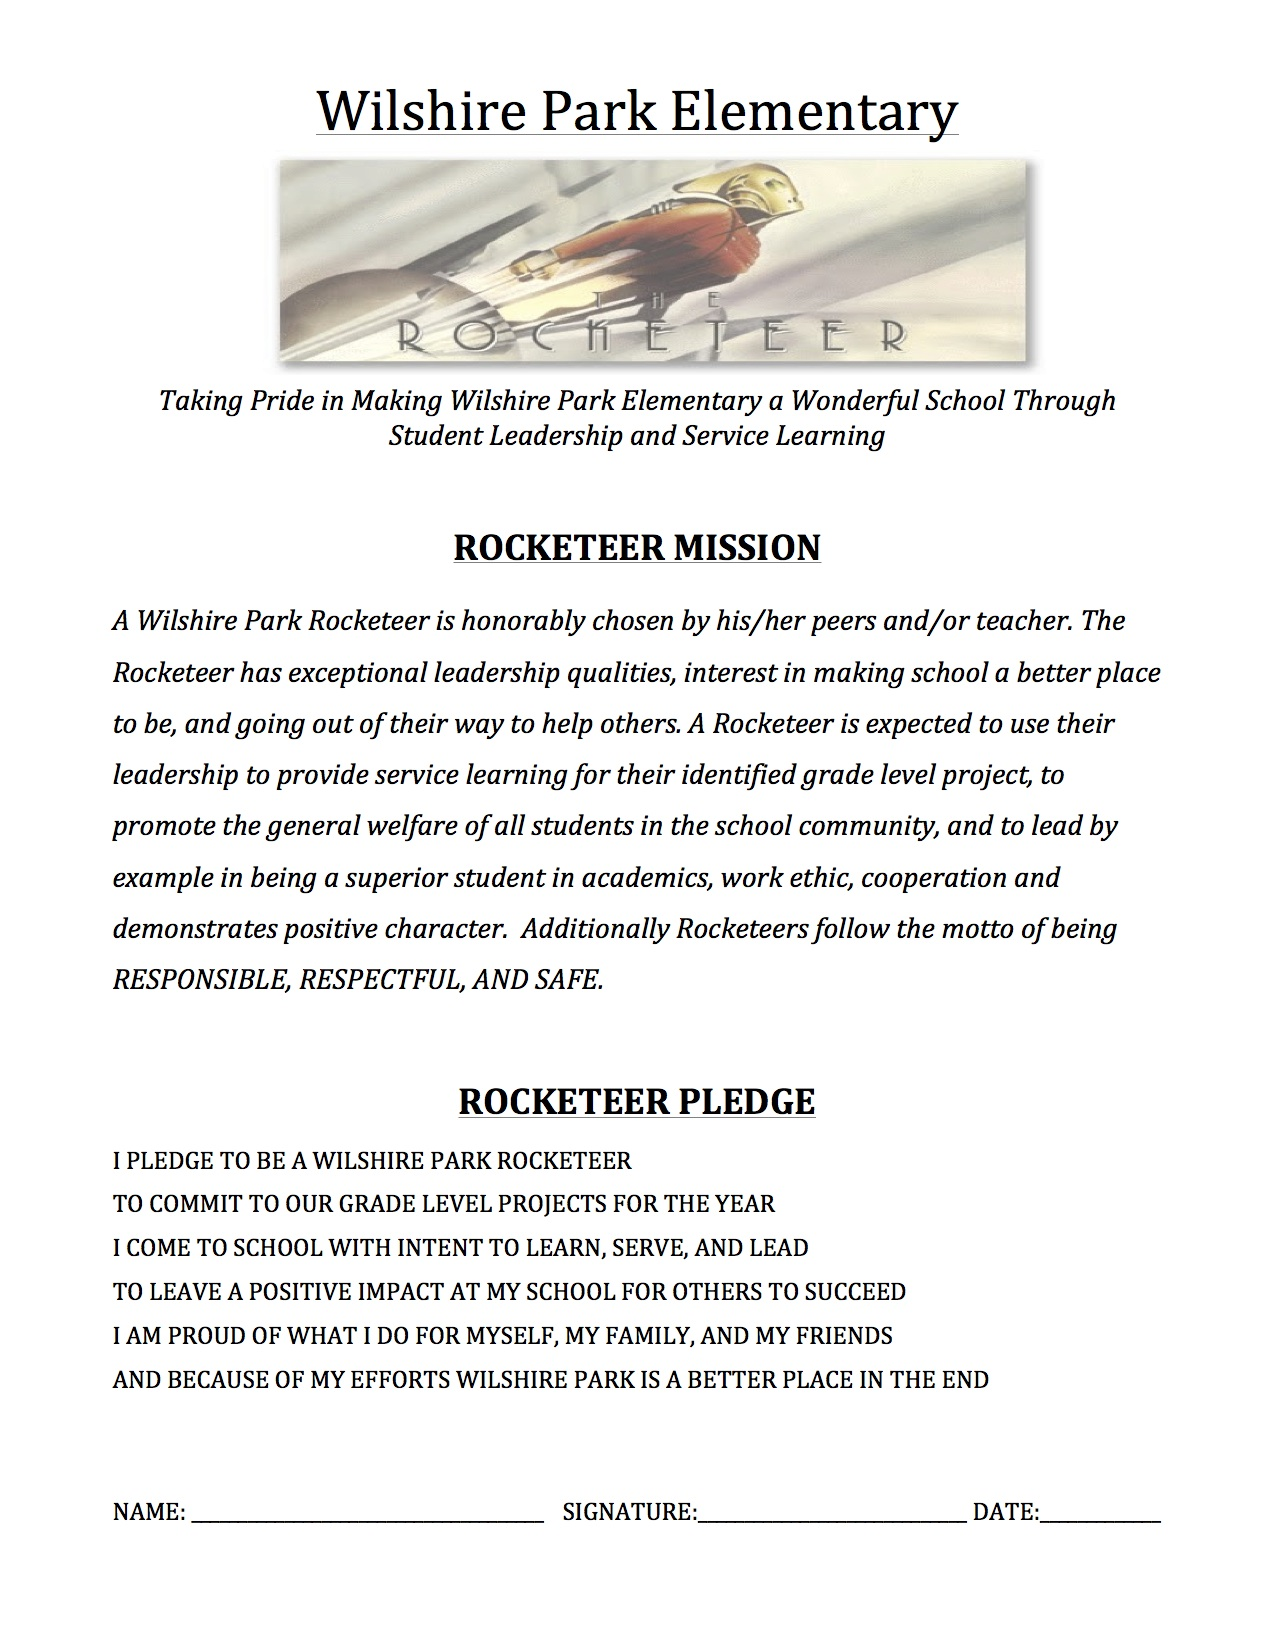 Rocketeer Mission and Pledge